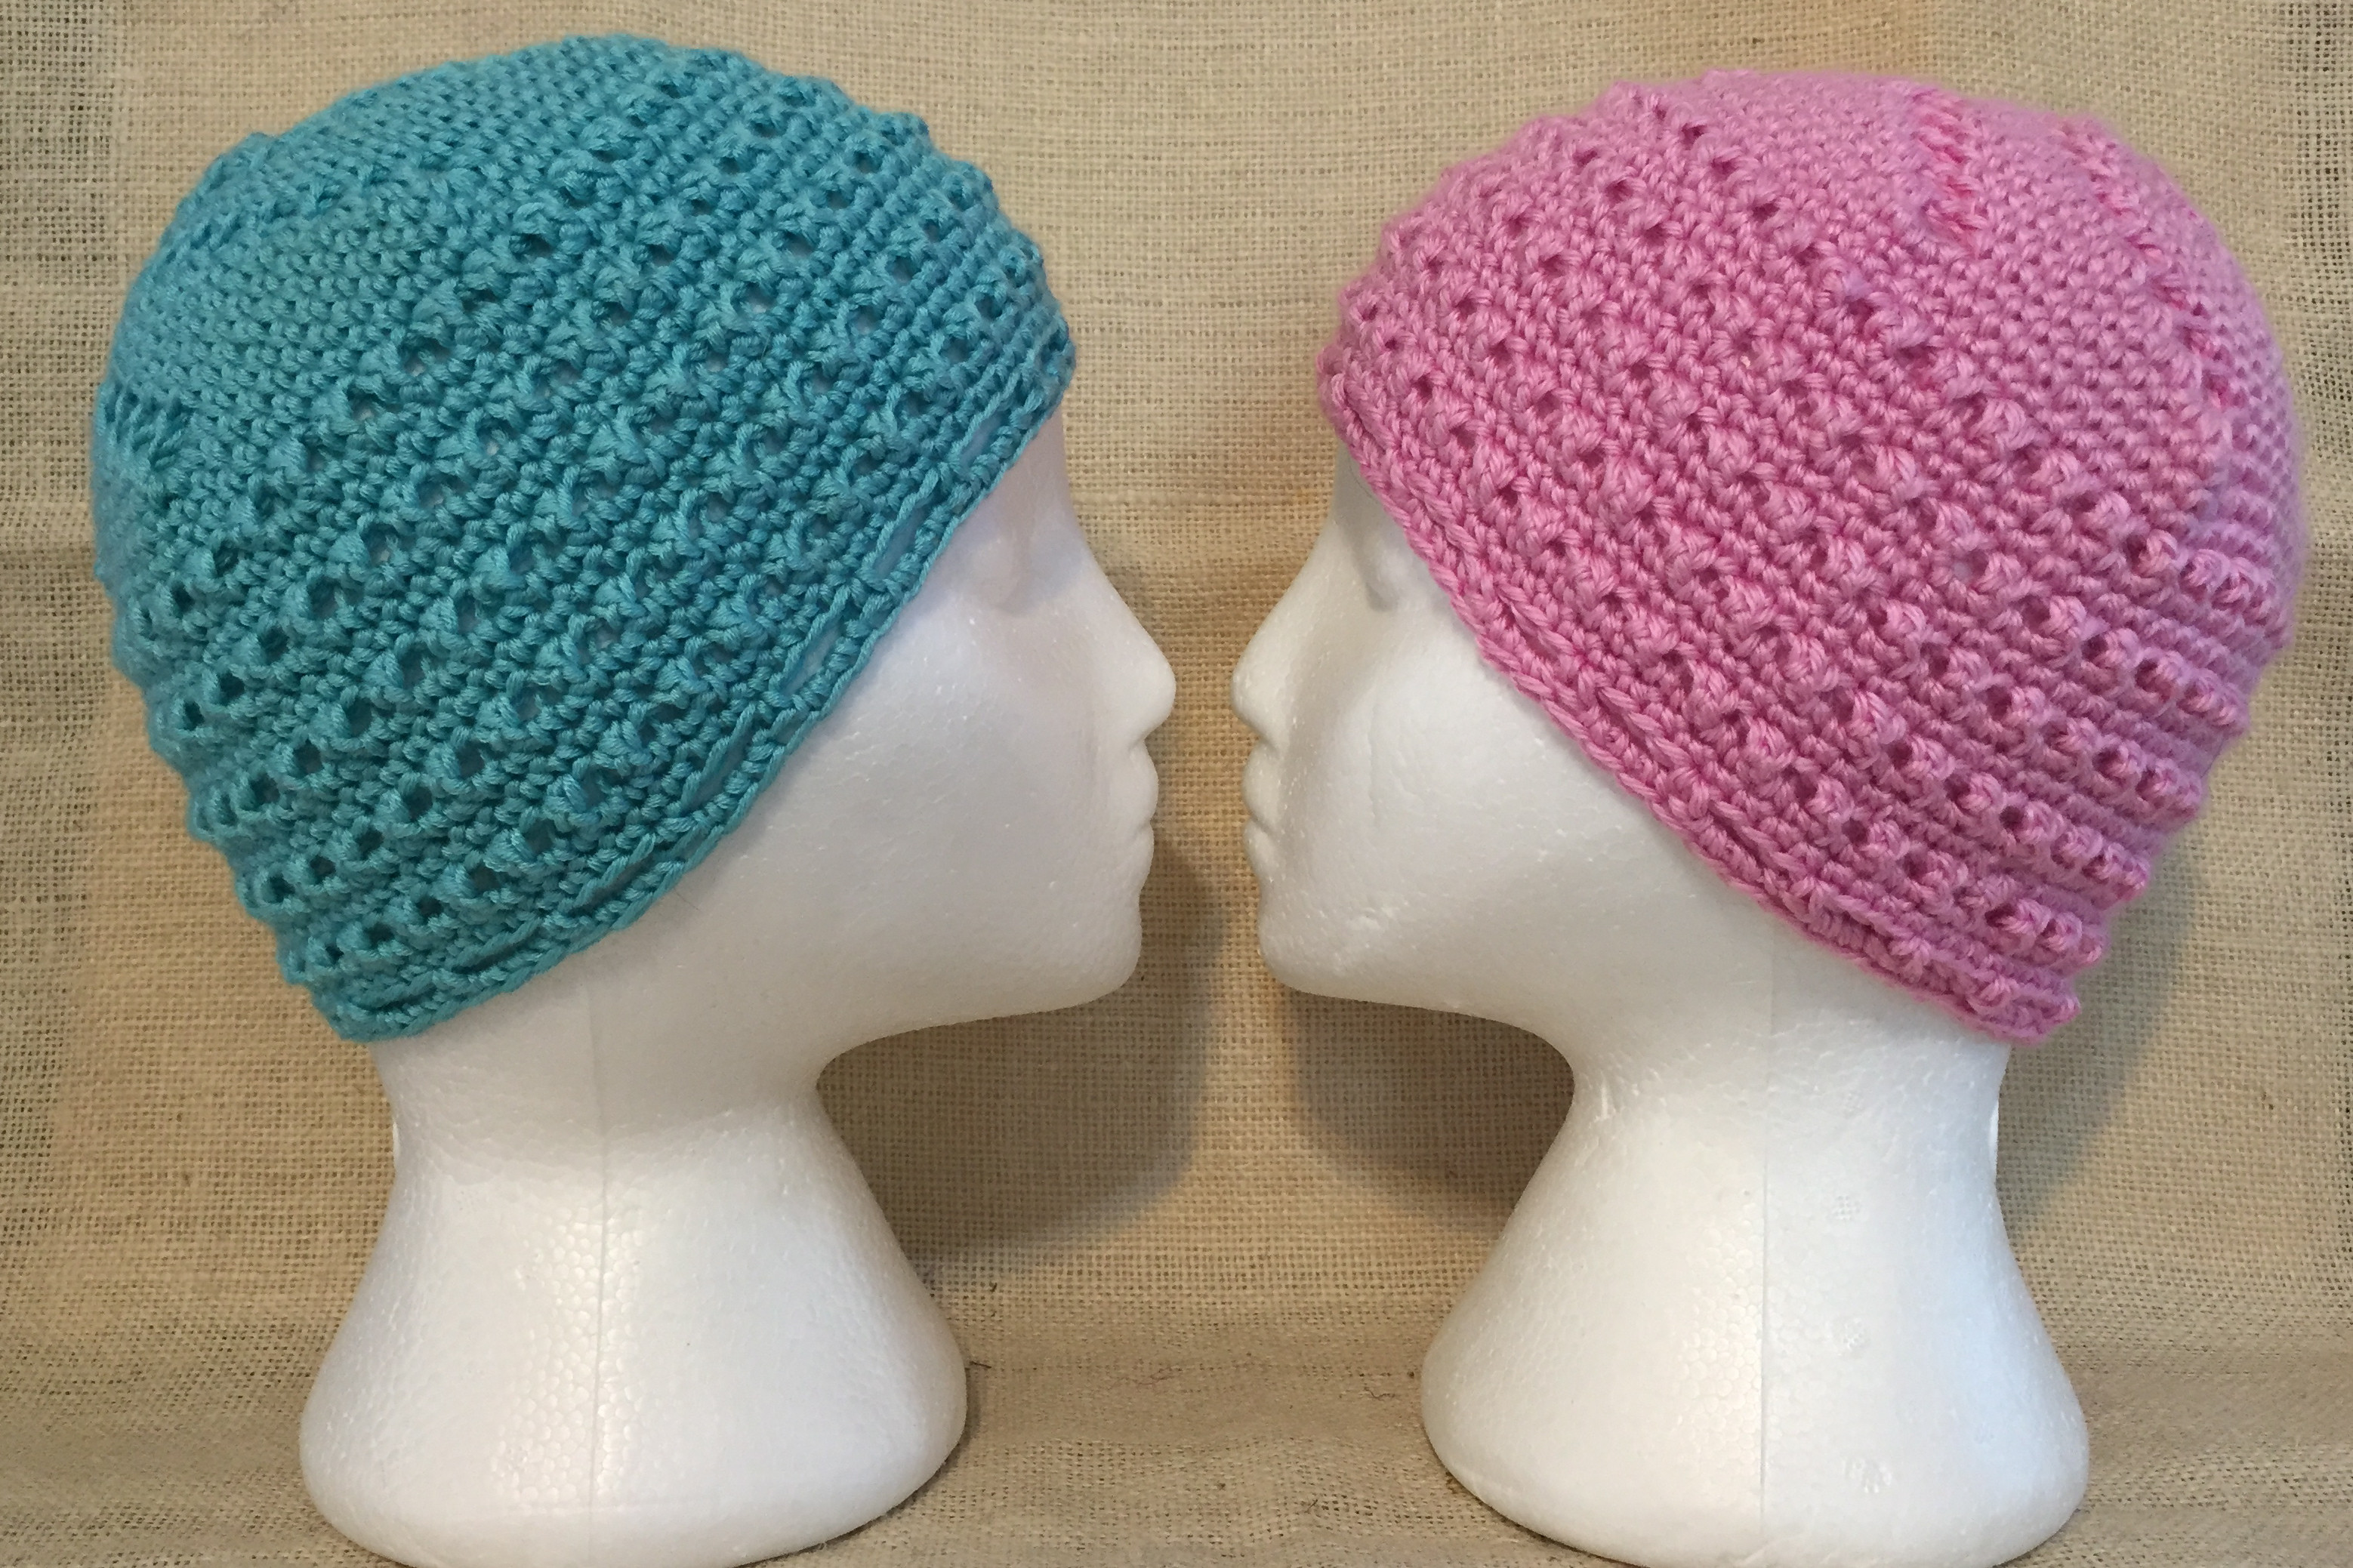 Free Crochet Chemo Hat Patterns Beautiful Chemo Caps Of Awesome 43 Ideas Free Crochet Chemo Hat Patterns